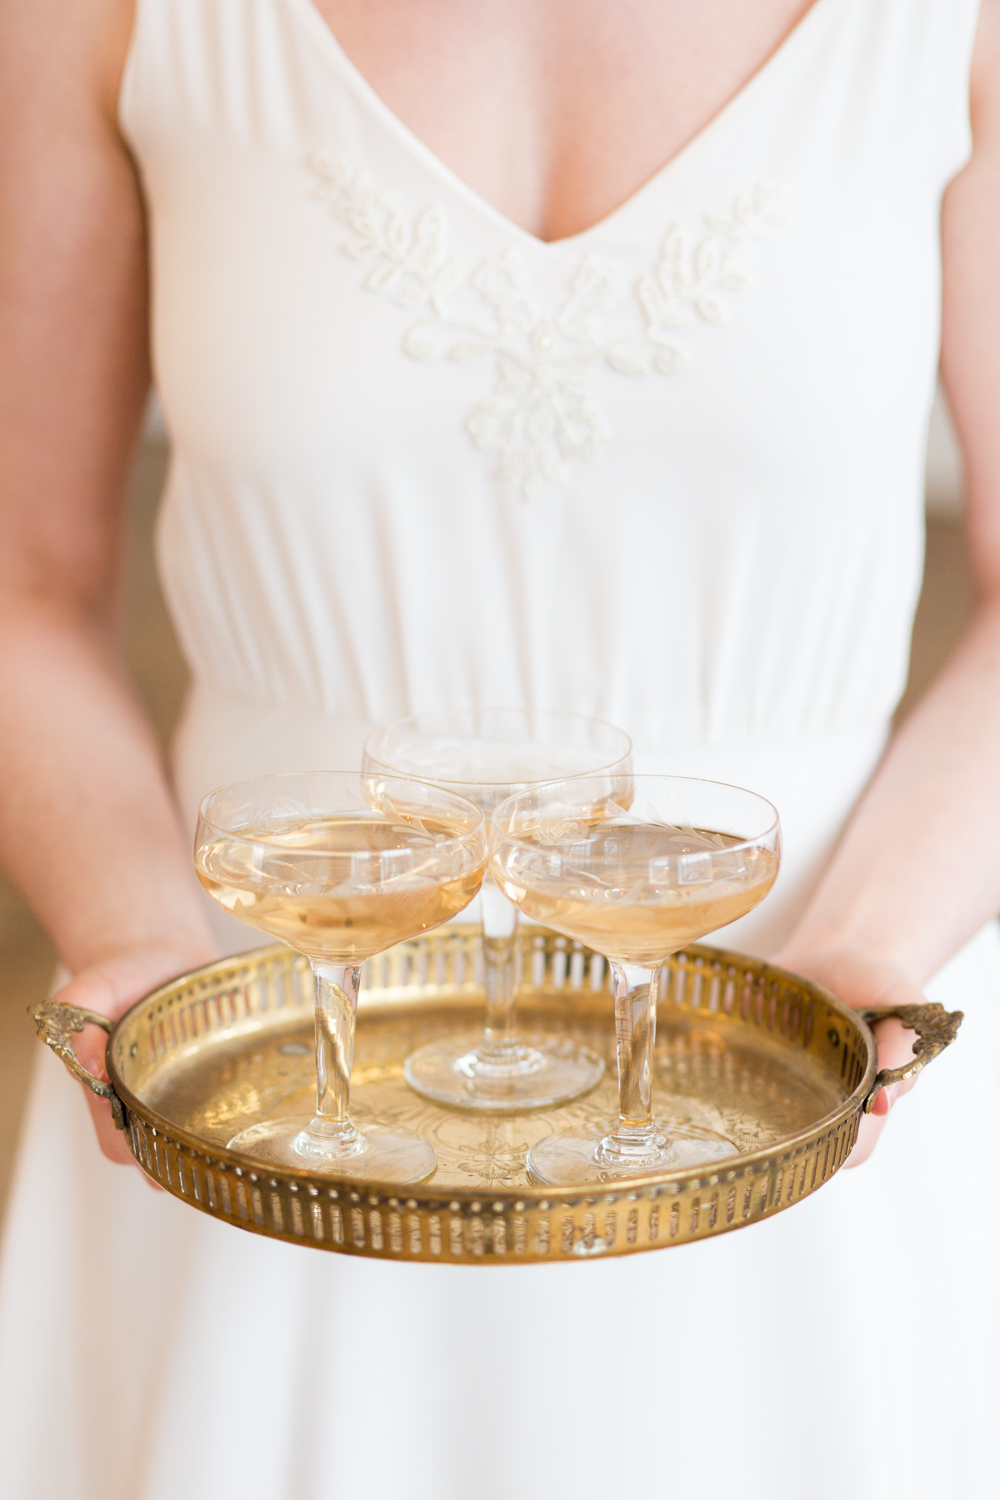 The Timeless Stylist - Wedding Styling - Champagne Saucers